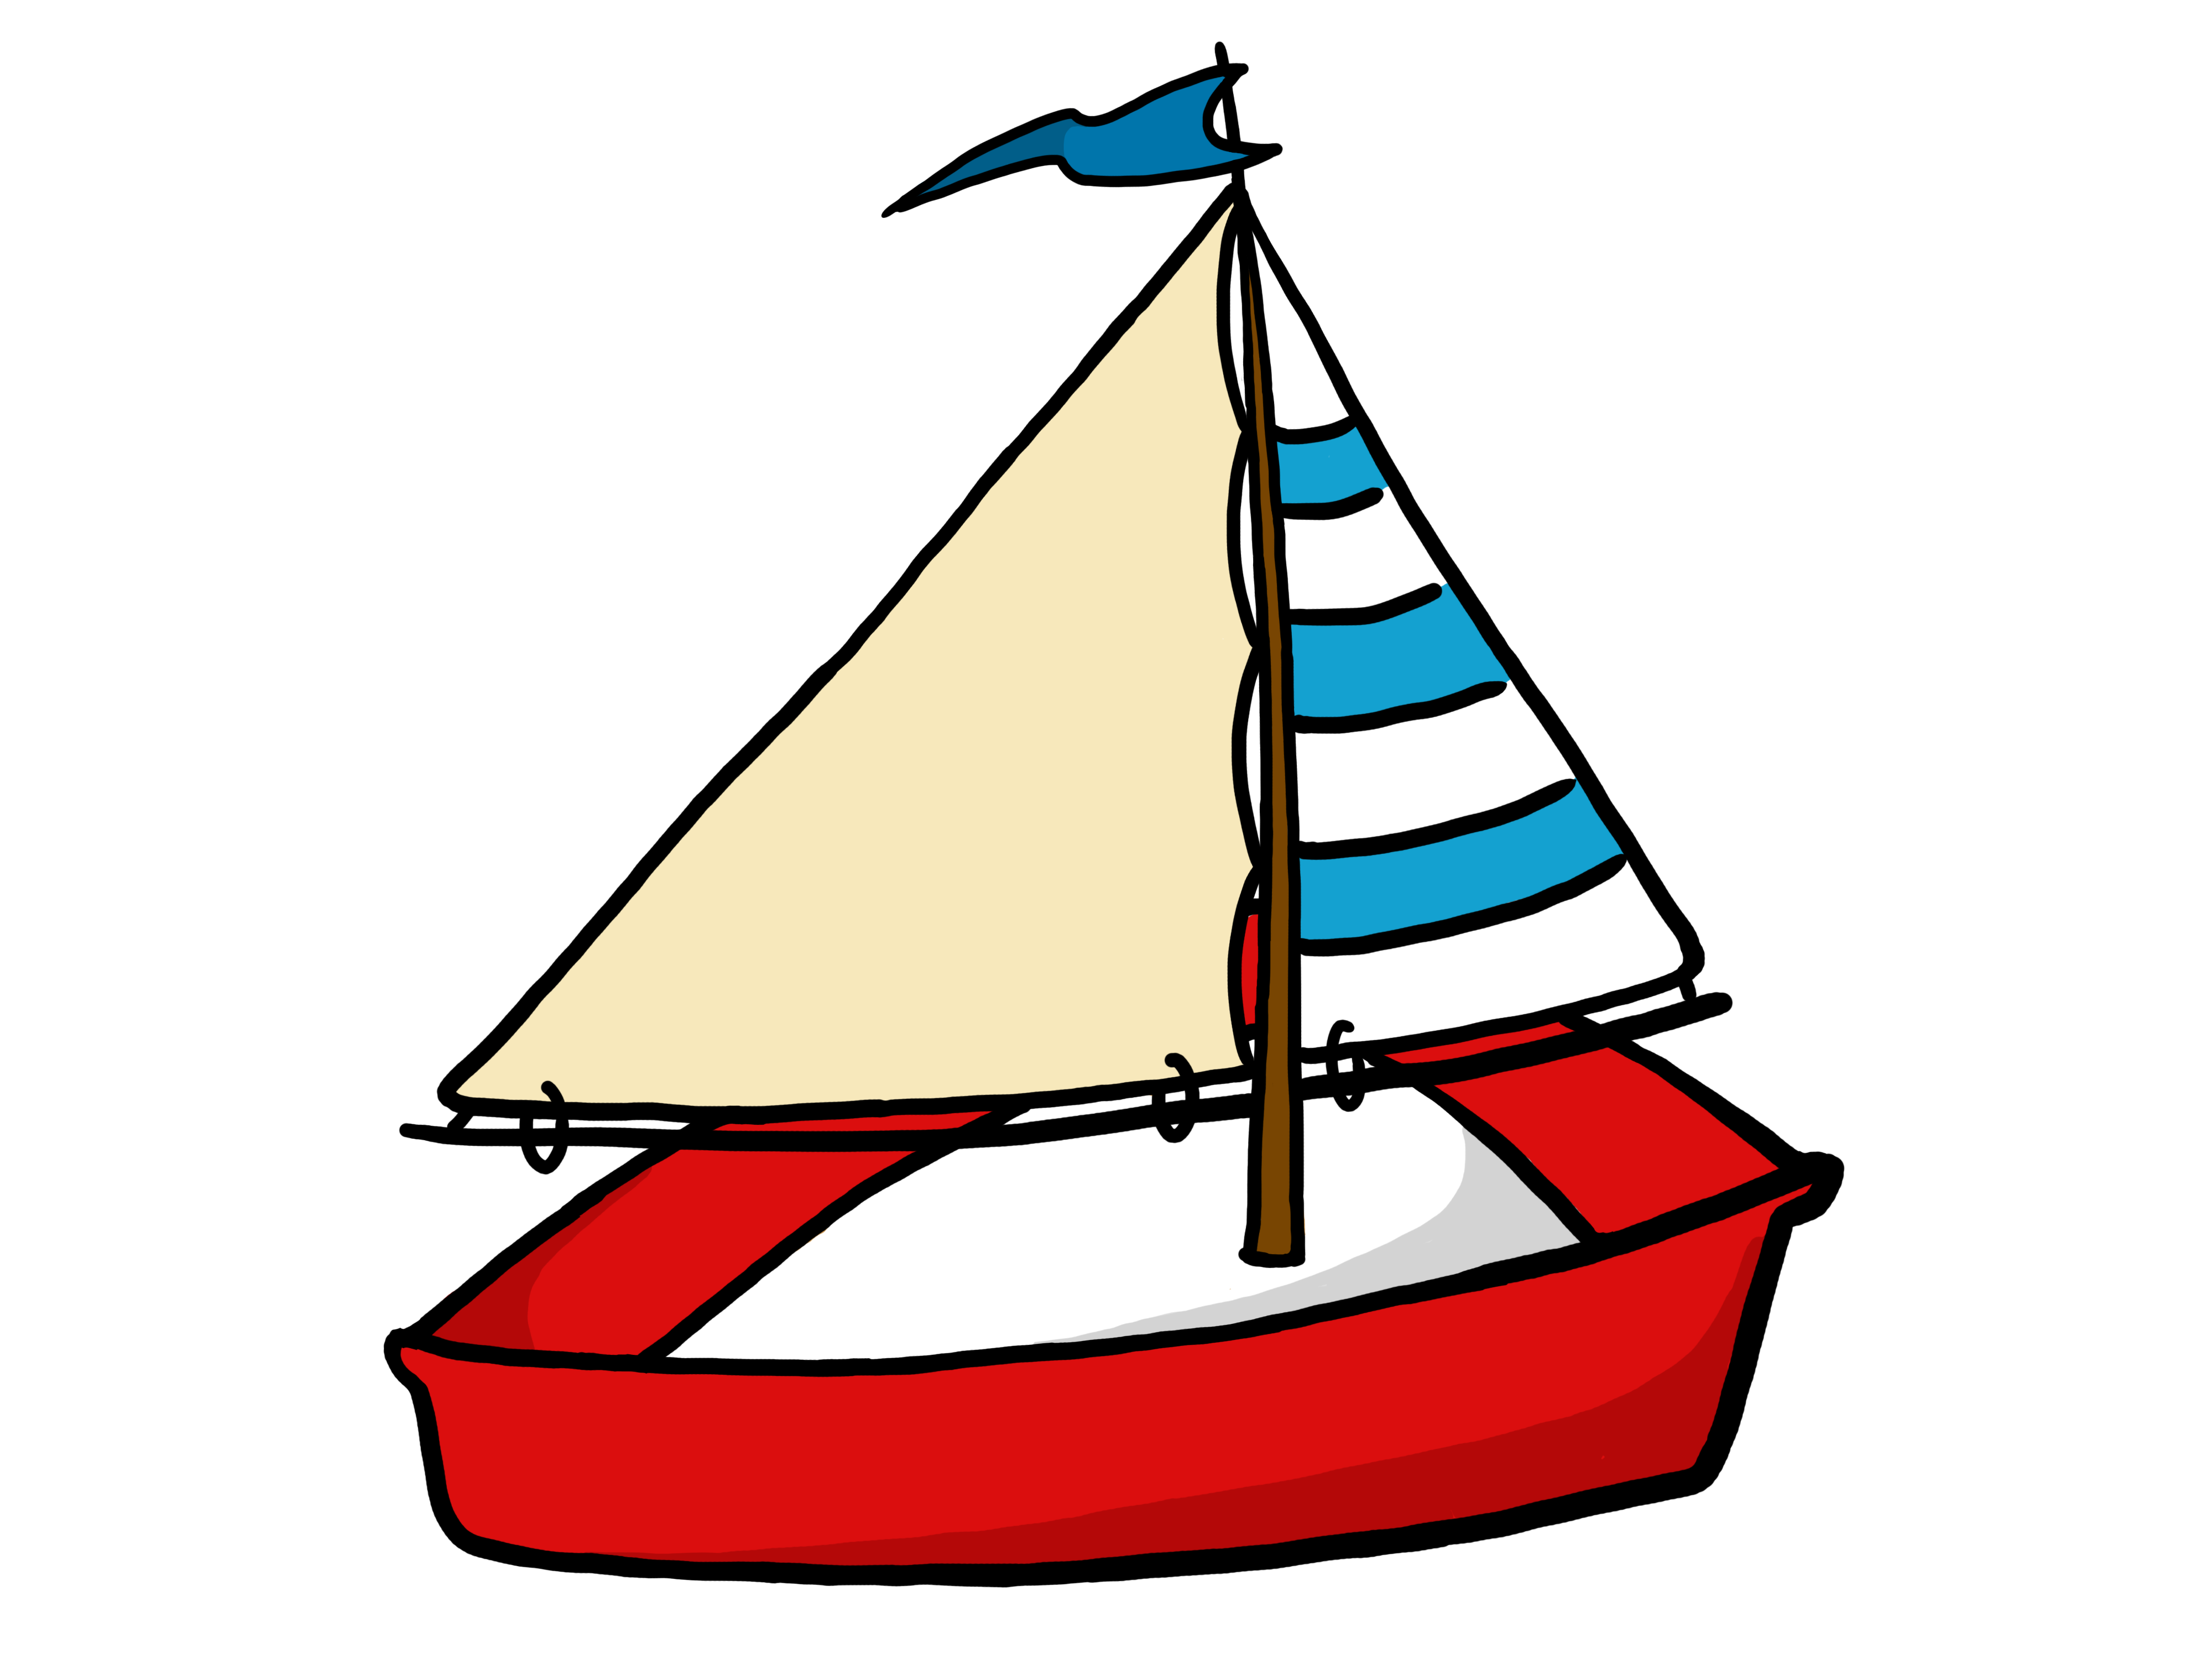 Clipart yacht clipart images gallery for free download.